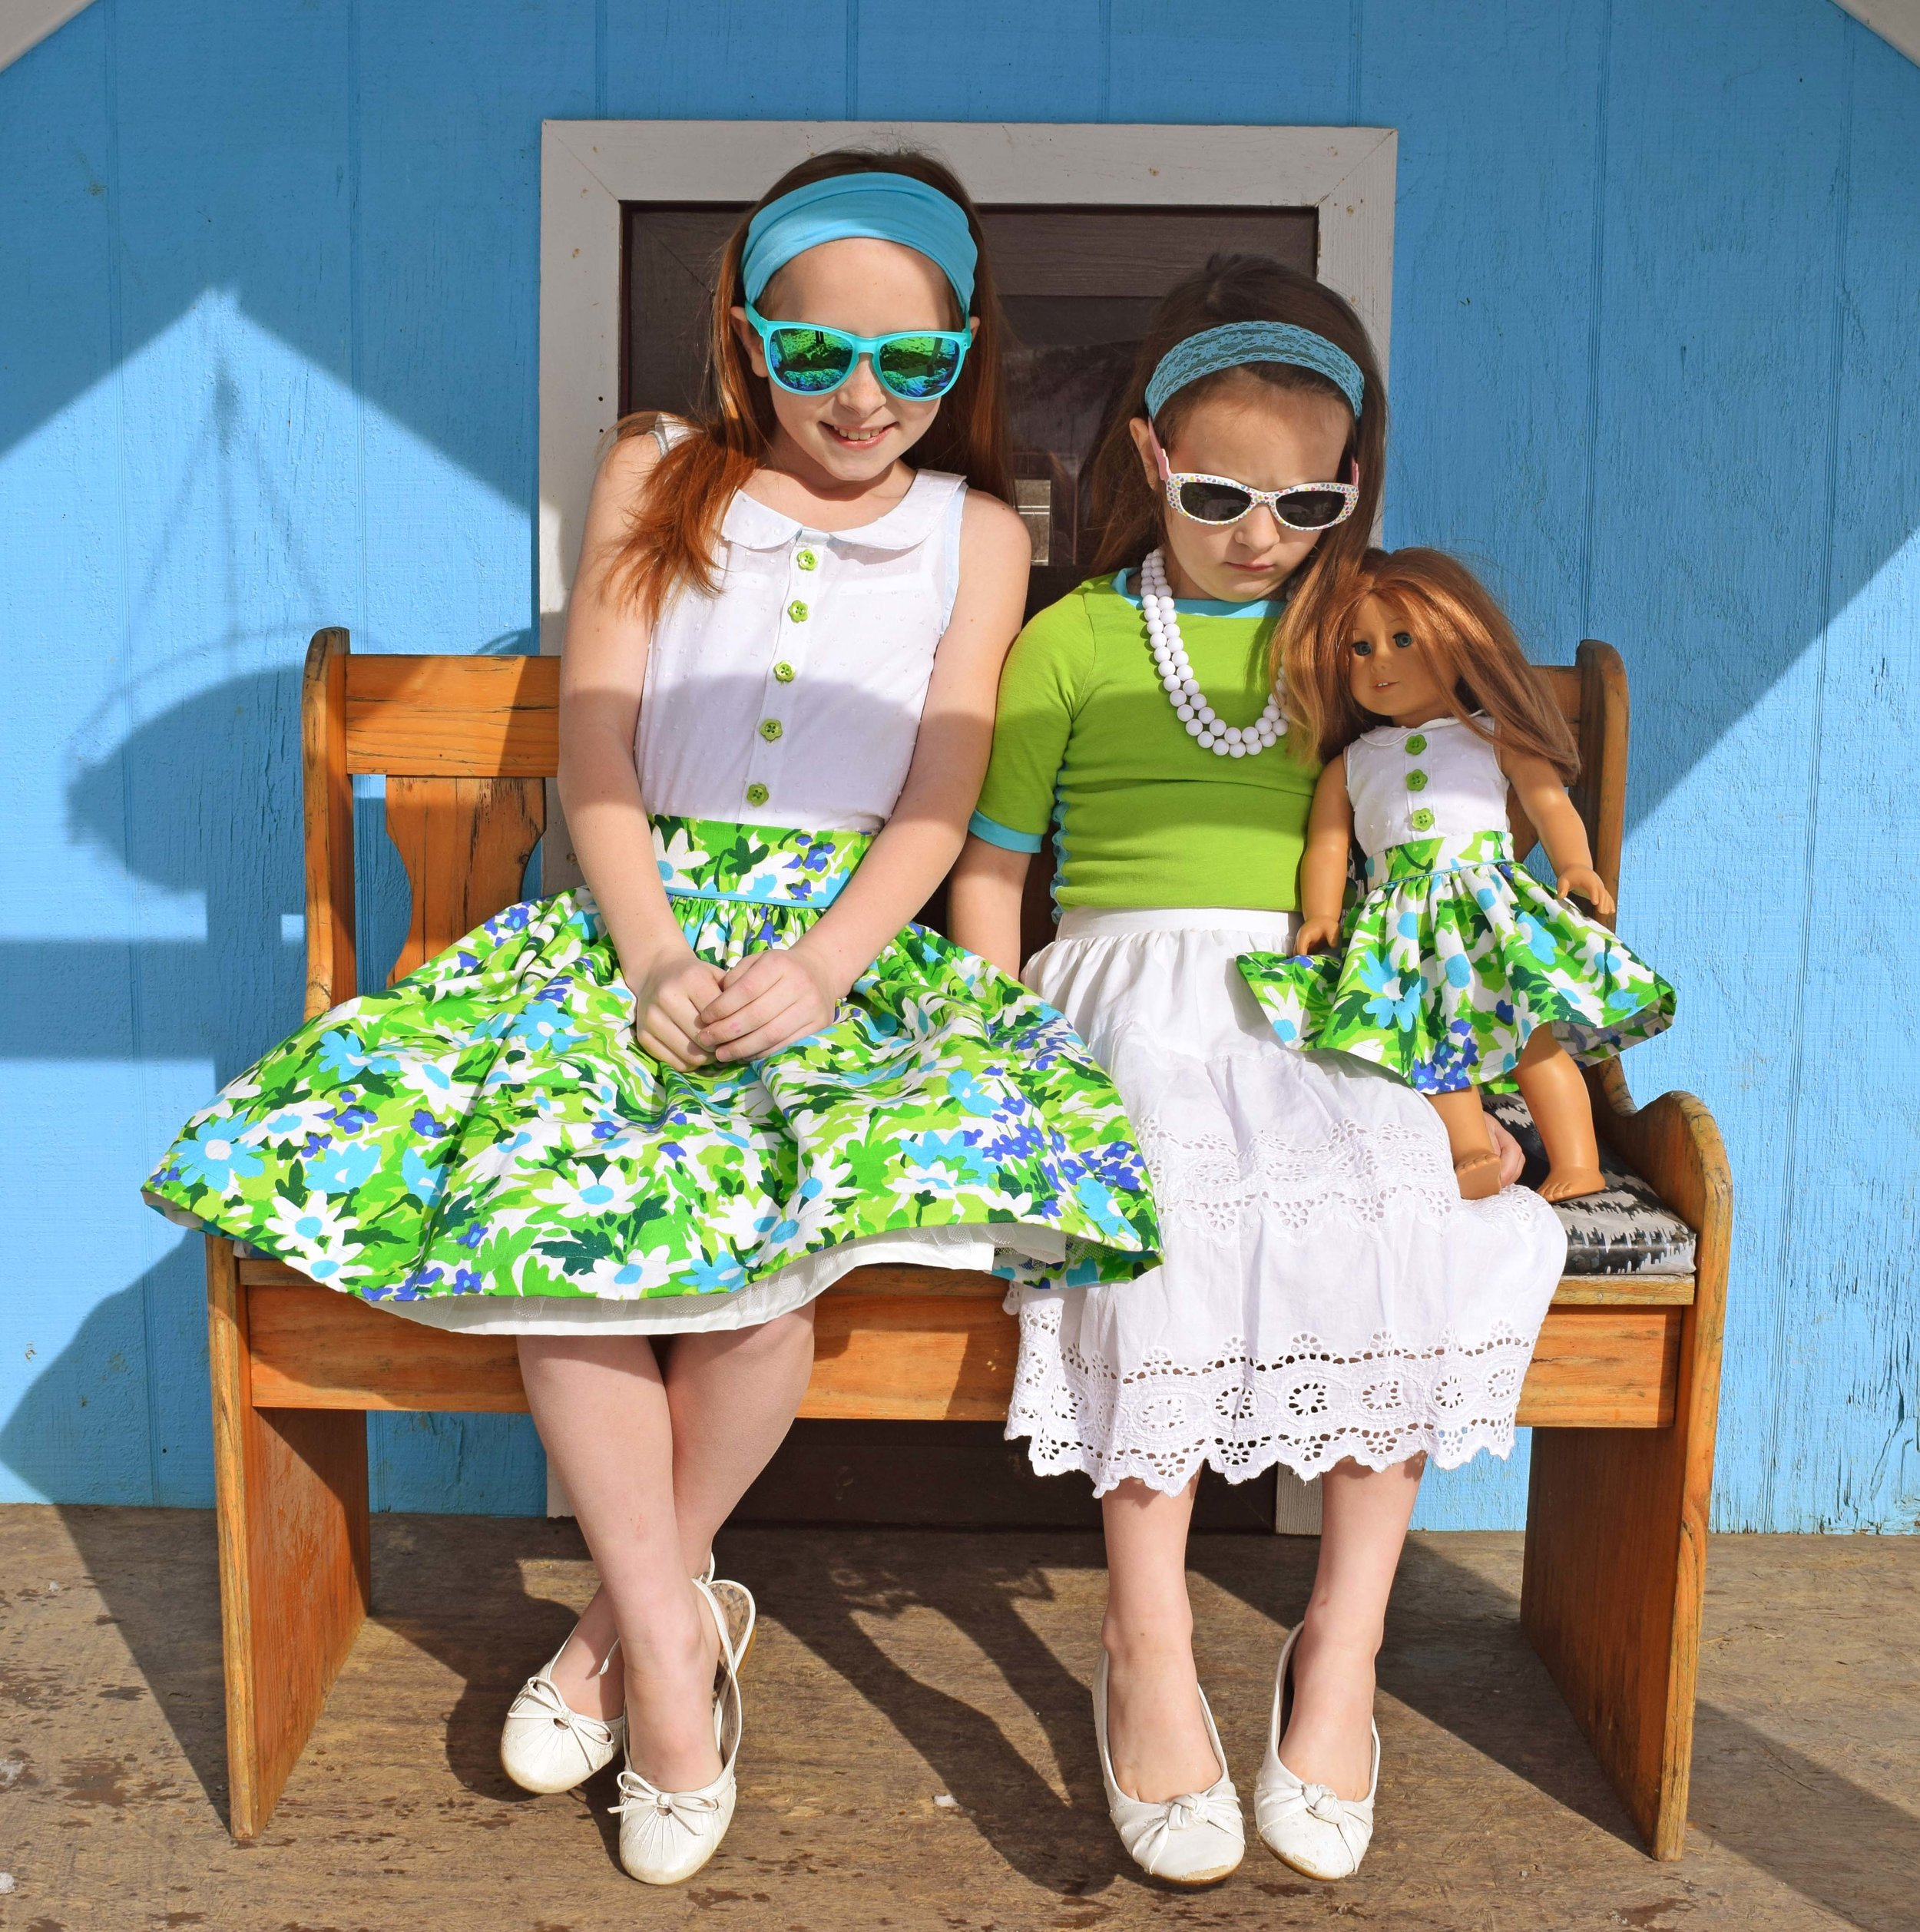 Adorable vintage style girls outfits made from upcycled materials